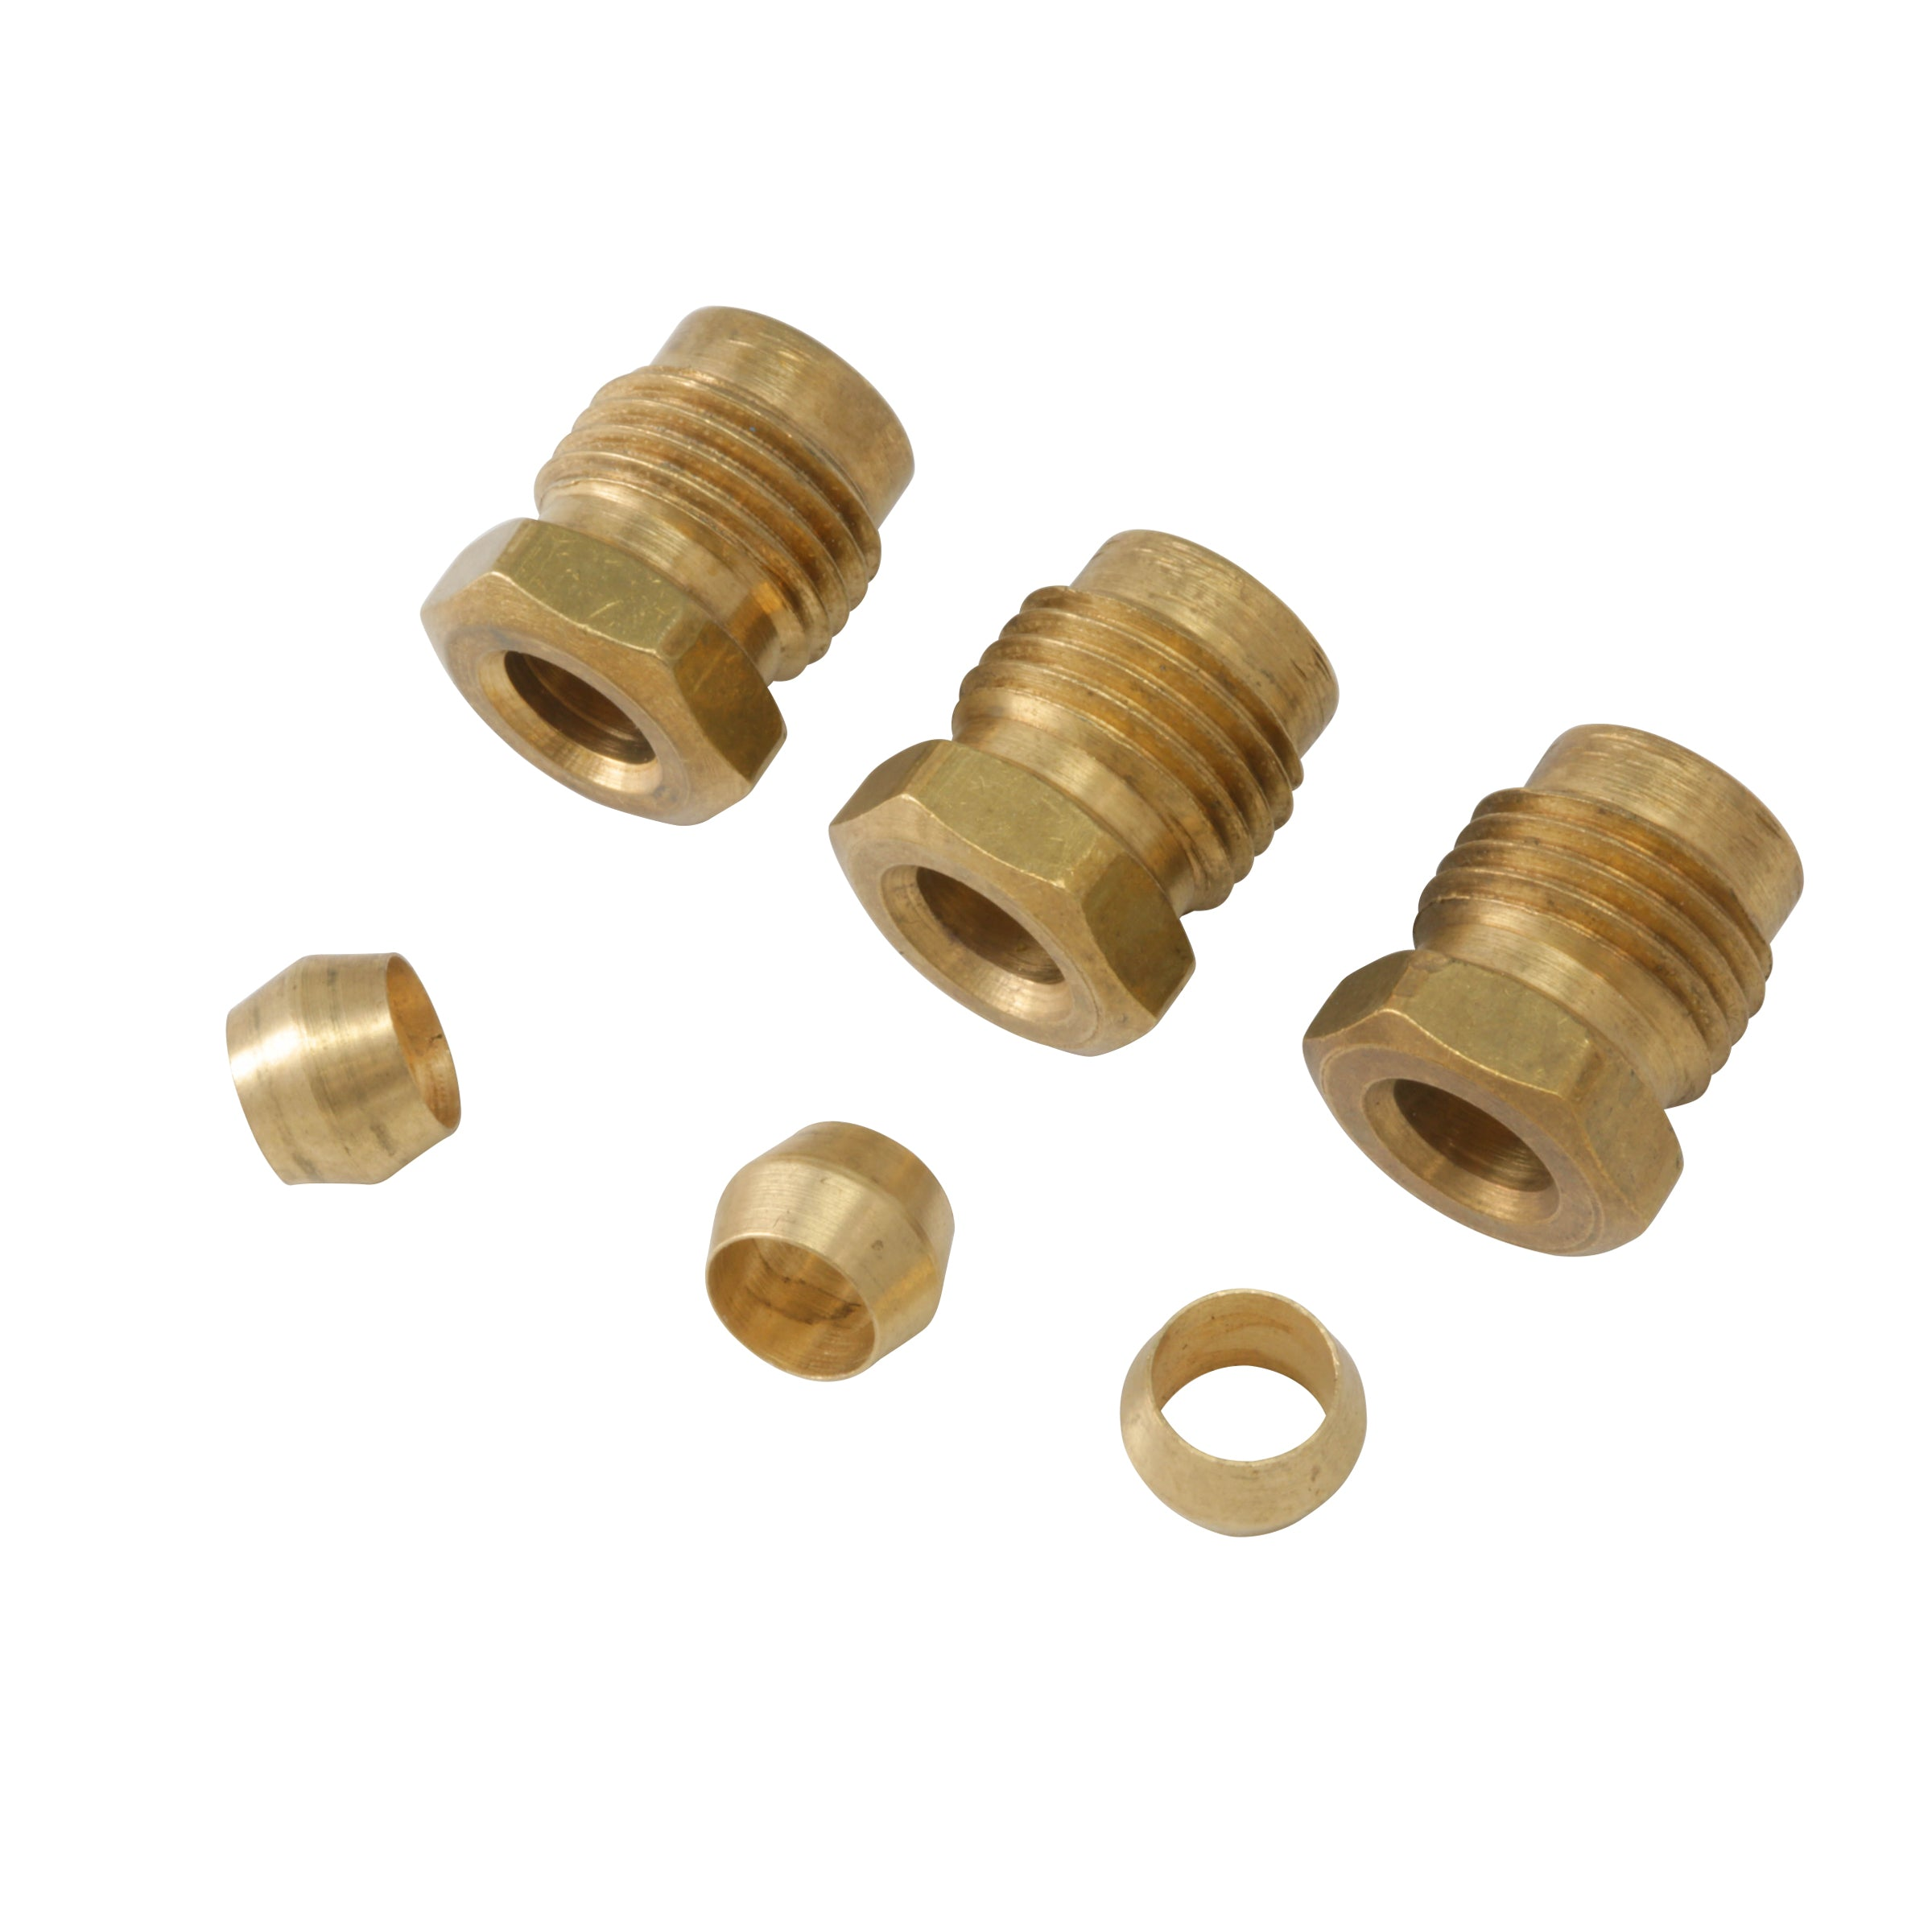 Stromberg Nut Compression Fitting Set